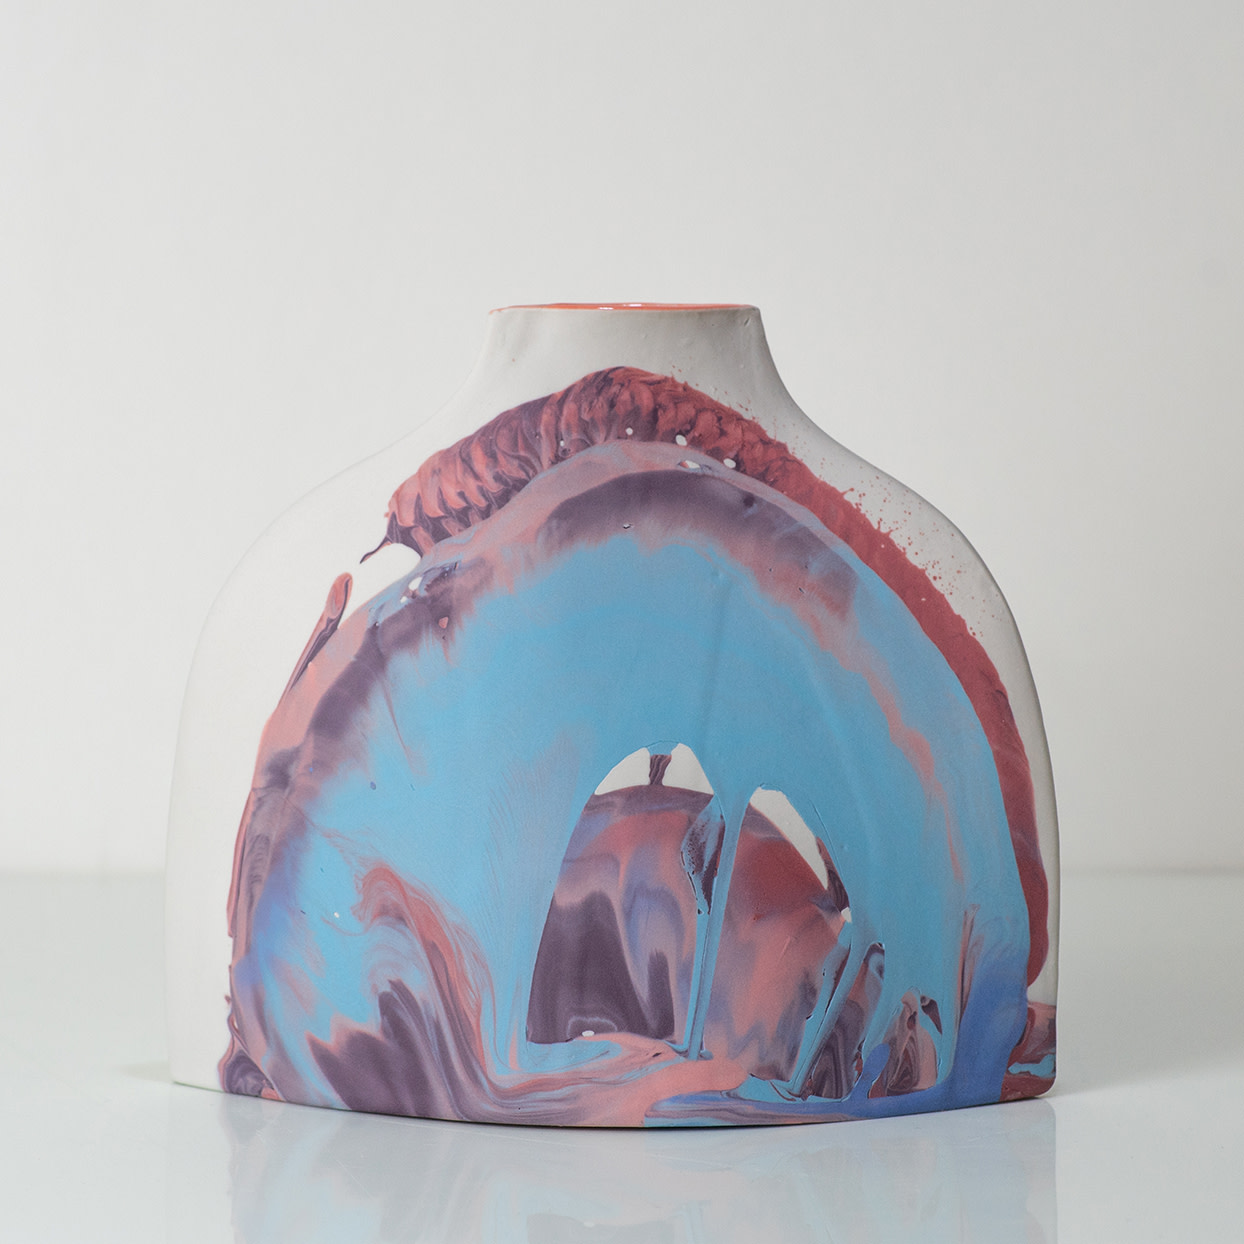 <span class=&#34;link fancybox-details-link&#34;><a href=&#34;/artists/219-james-pegg/works/6093-james-pegg-shoulder-vase-2019/&#34;>View Detail Page</a></span><div class=&#34;artist&#34;><strong>James Pegg</strong></div> <div class=&#34;title&#34;><em>Shoulder Vase</em>, 2019</div> <div class=&#34;medium&#34;>action-cast stained porcelain with glazed interior <br />  (in collaboration with Lucia Fraser)</div> <div class=&#34;dimensions&#34;>h 20 cm x w 17.5 cm</div><div class=&#34;price&#34;>£205.00</div><div class=&#34;copyright_line&#34;>OwnArt: £ 20.50 x 10 Months, 0% APR </div>